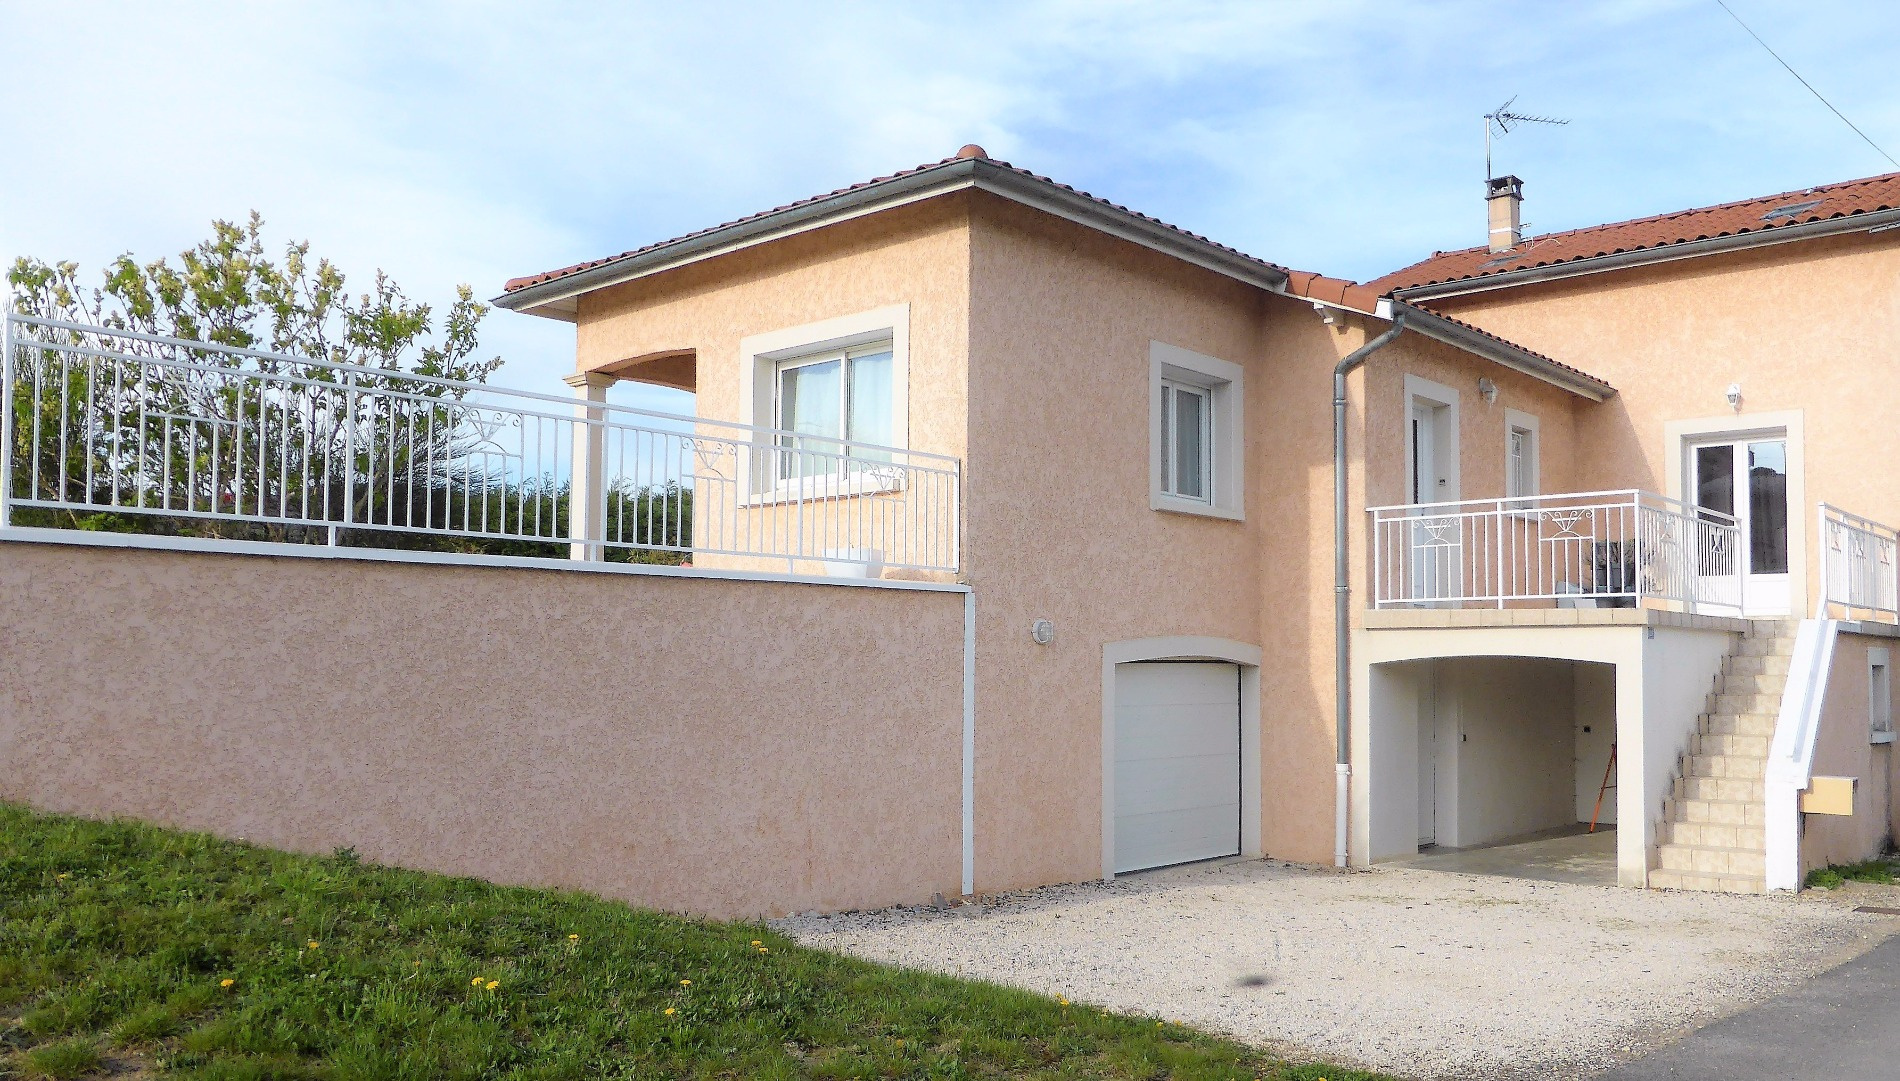 Location thurins 69510 messimy et plus appartements et for Ca location immobilier